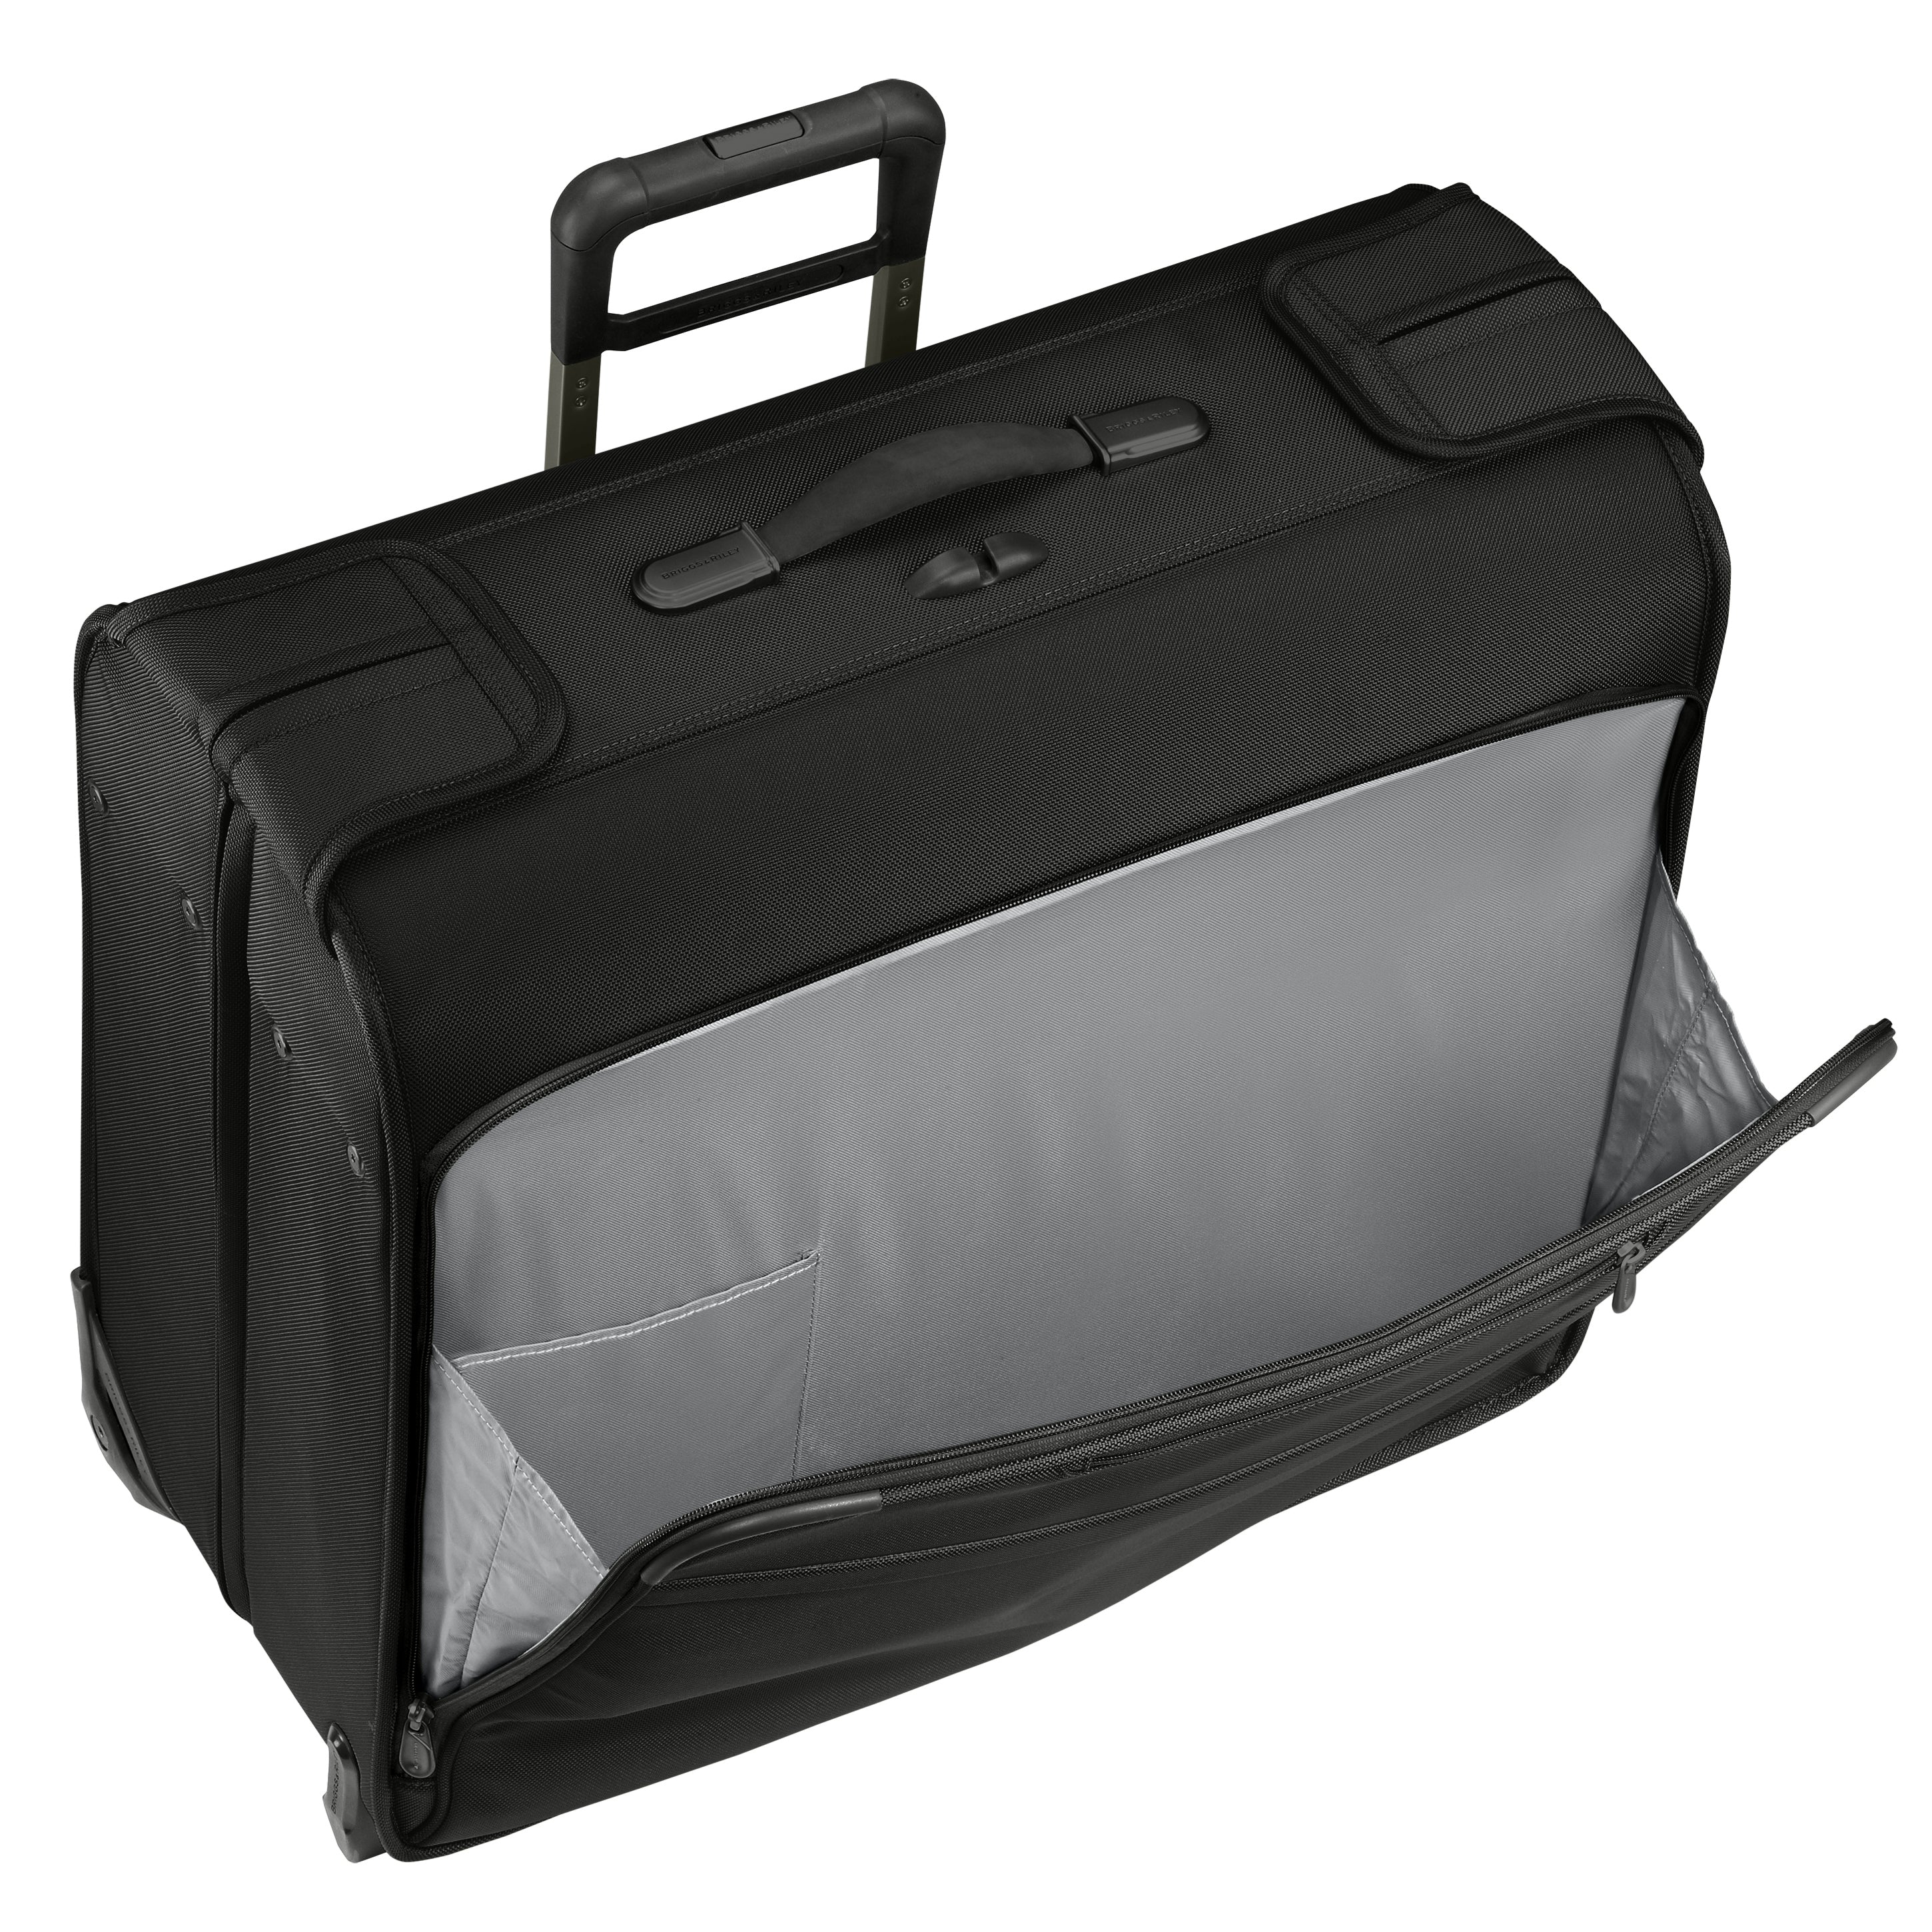 "Briggs & Riley Baseline 21"" Deluxe Wheeled Garment Bag -Black 